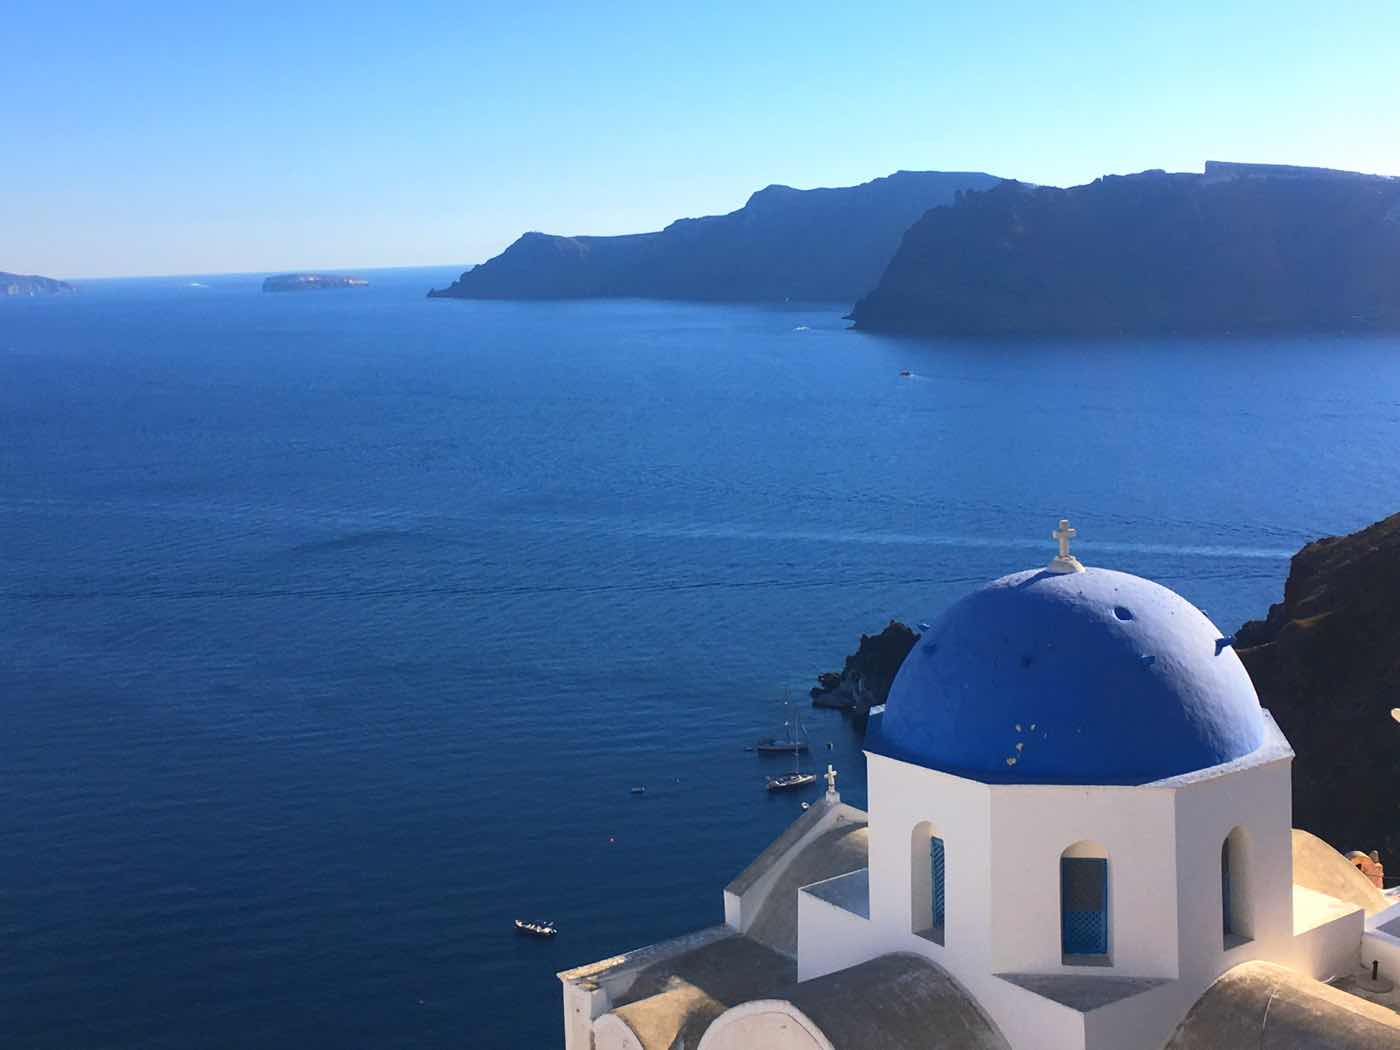 My Greece Itinerary For A 2 Week Independent Trip Without